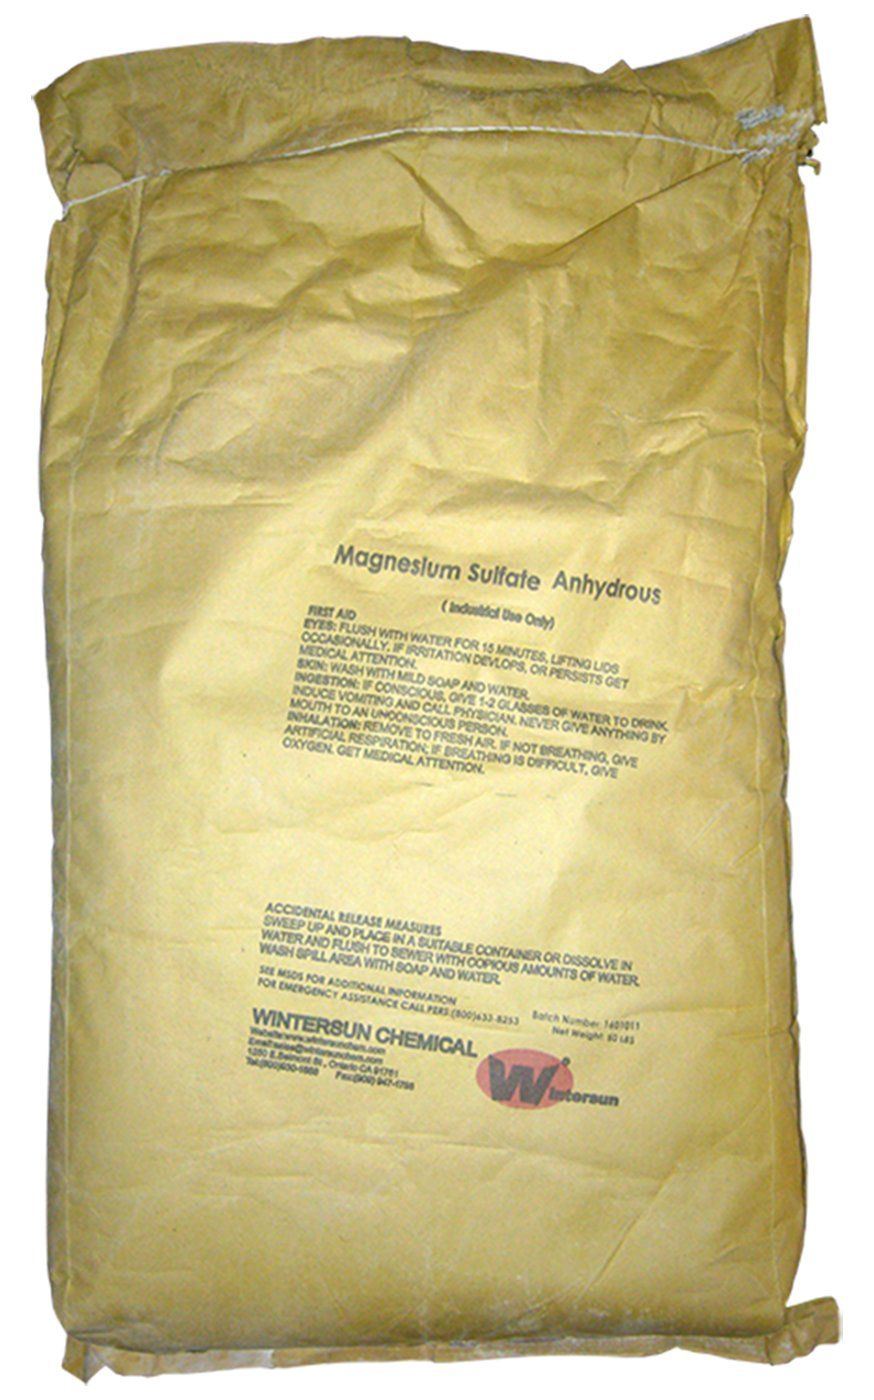 Magnesium Sulfate Anhydrous [MgSO4] [CAS_7487-88-9] 99+%, White Crystalline Powder (50 Lbs Bag) by Wintersun Chemical